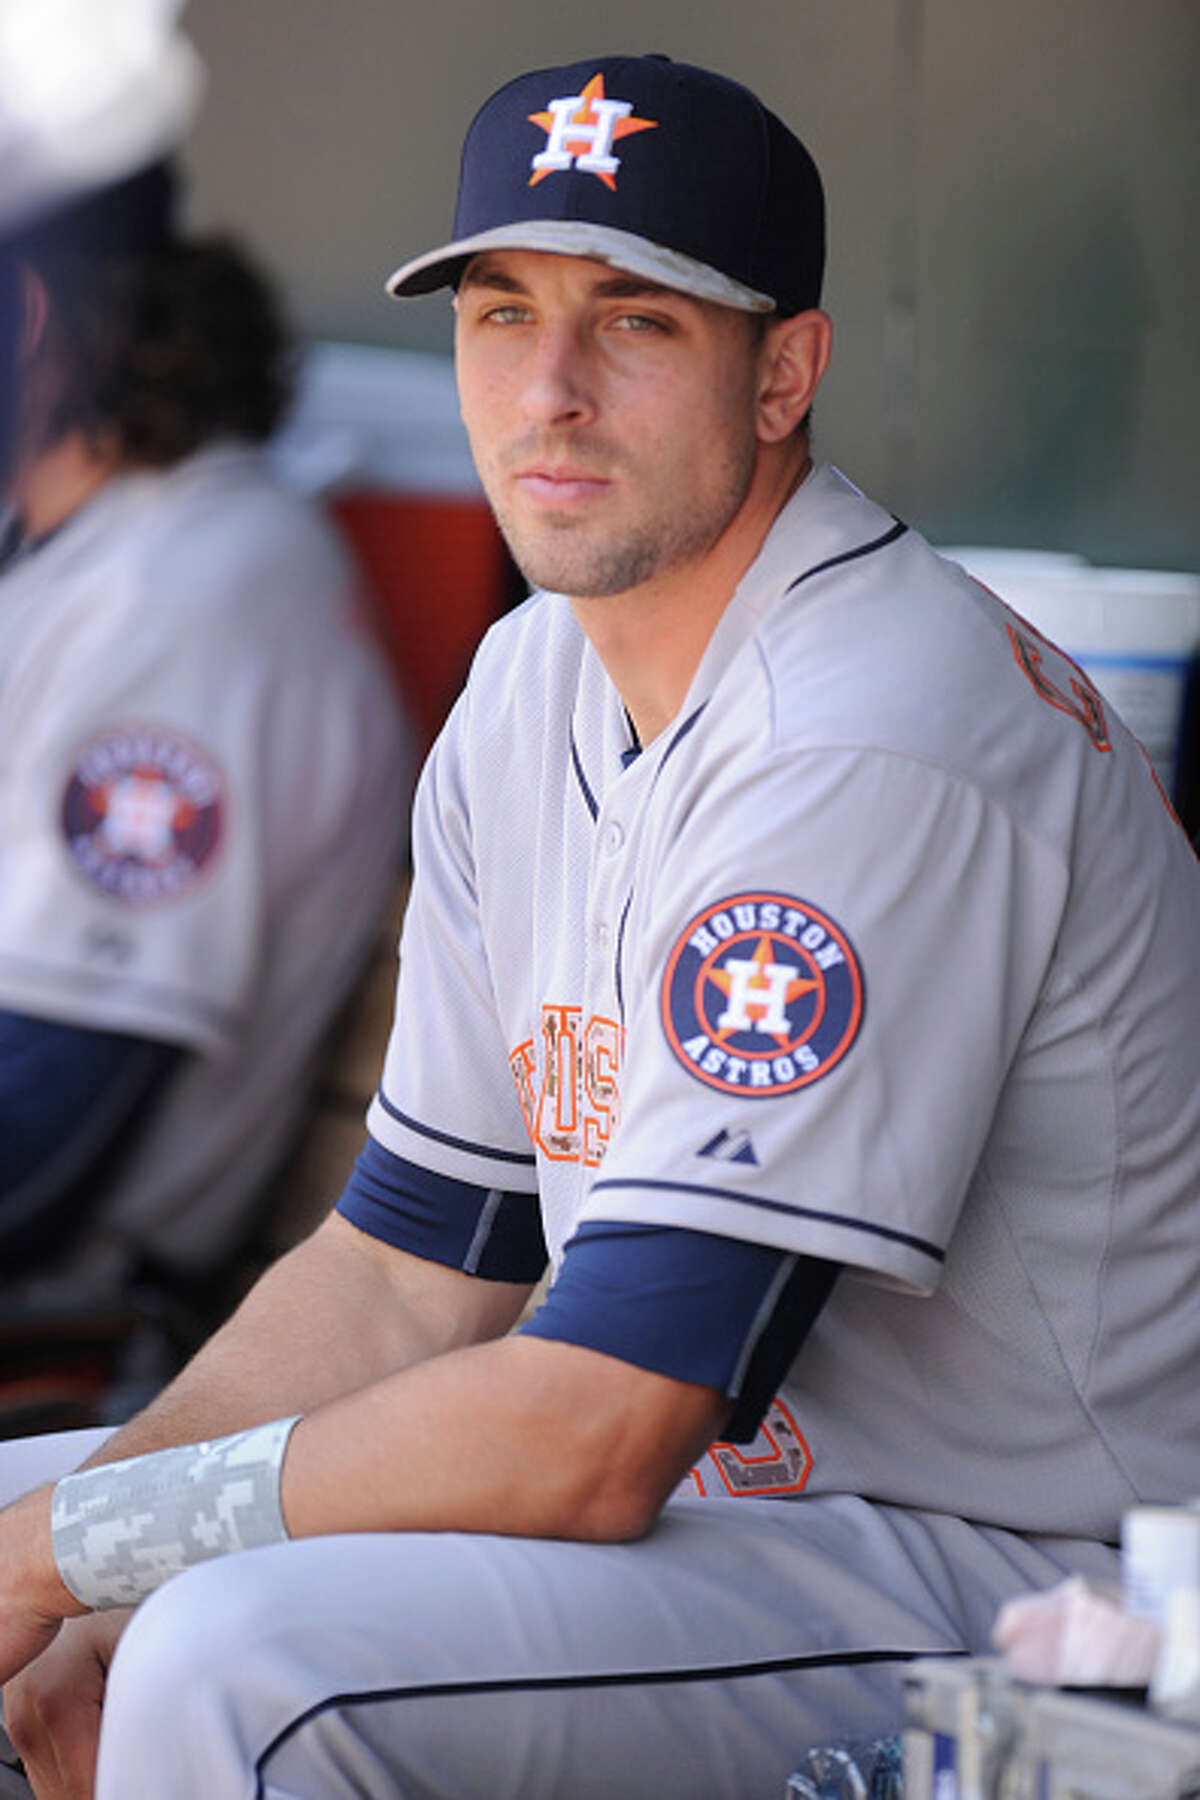 George Springer Houston Astros Remember the hot and strangely photogenic guy who had his photo taken at the finish line of a marathon? Well, he has competition. Meet George Springer, part time dugout model.